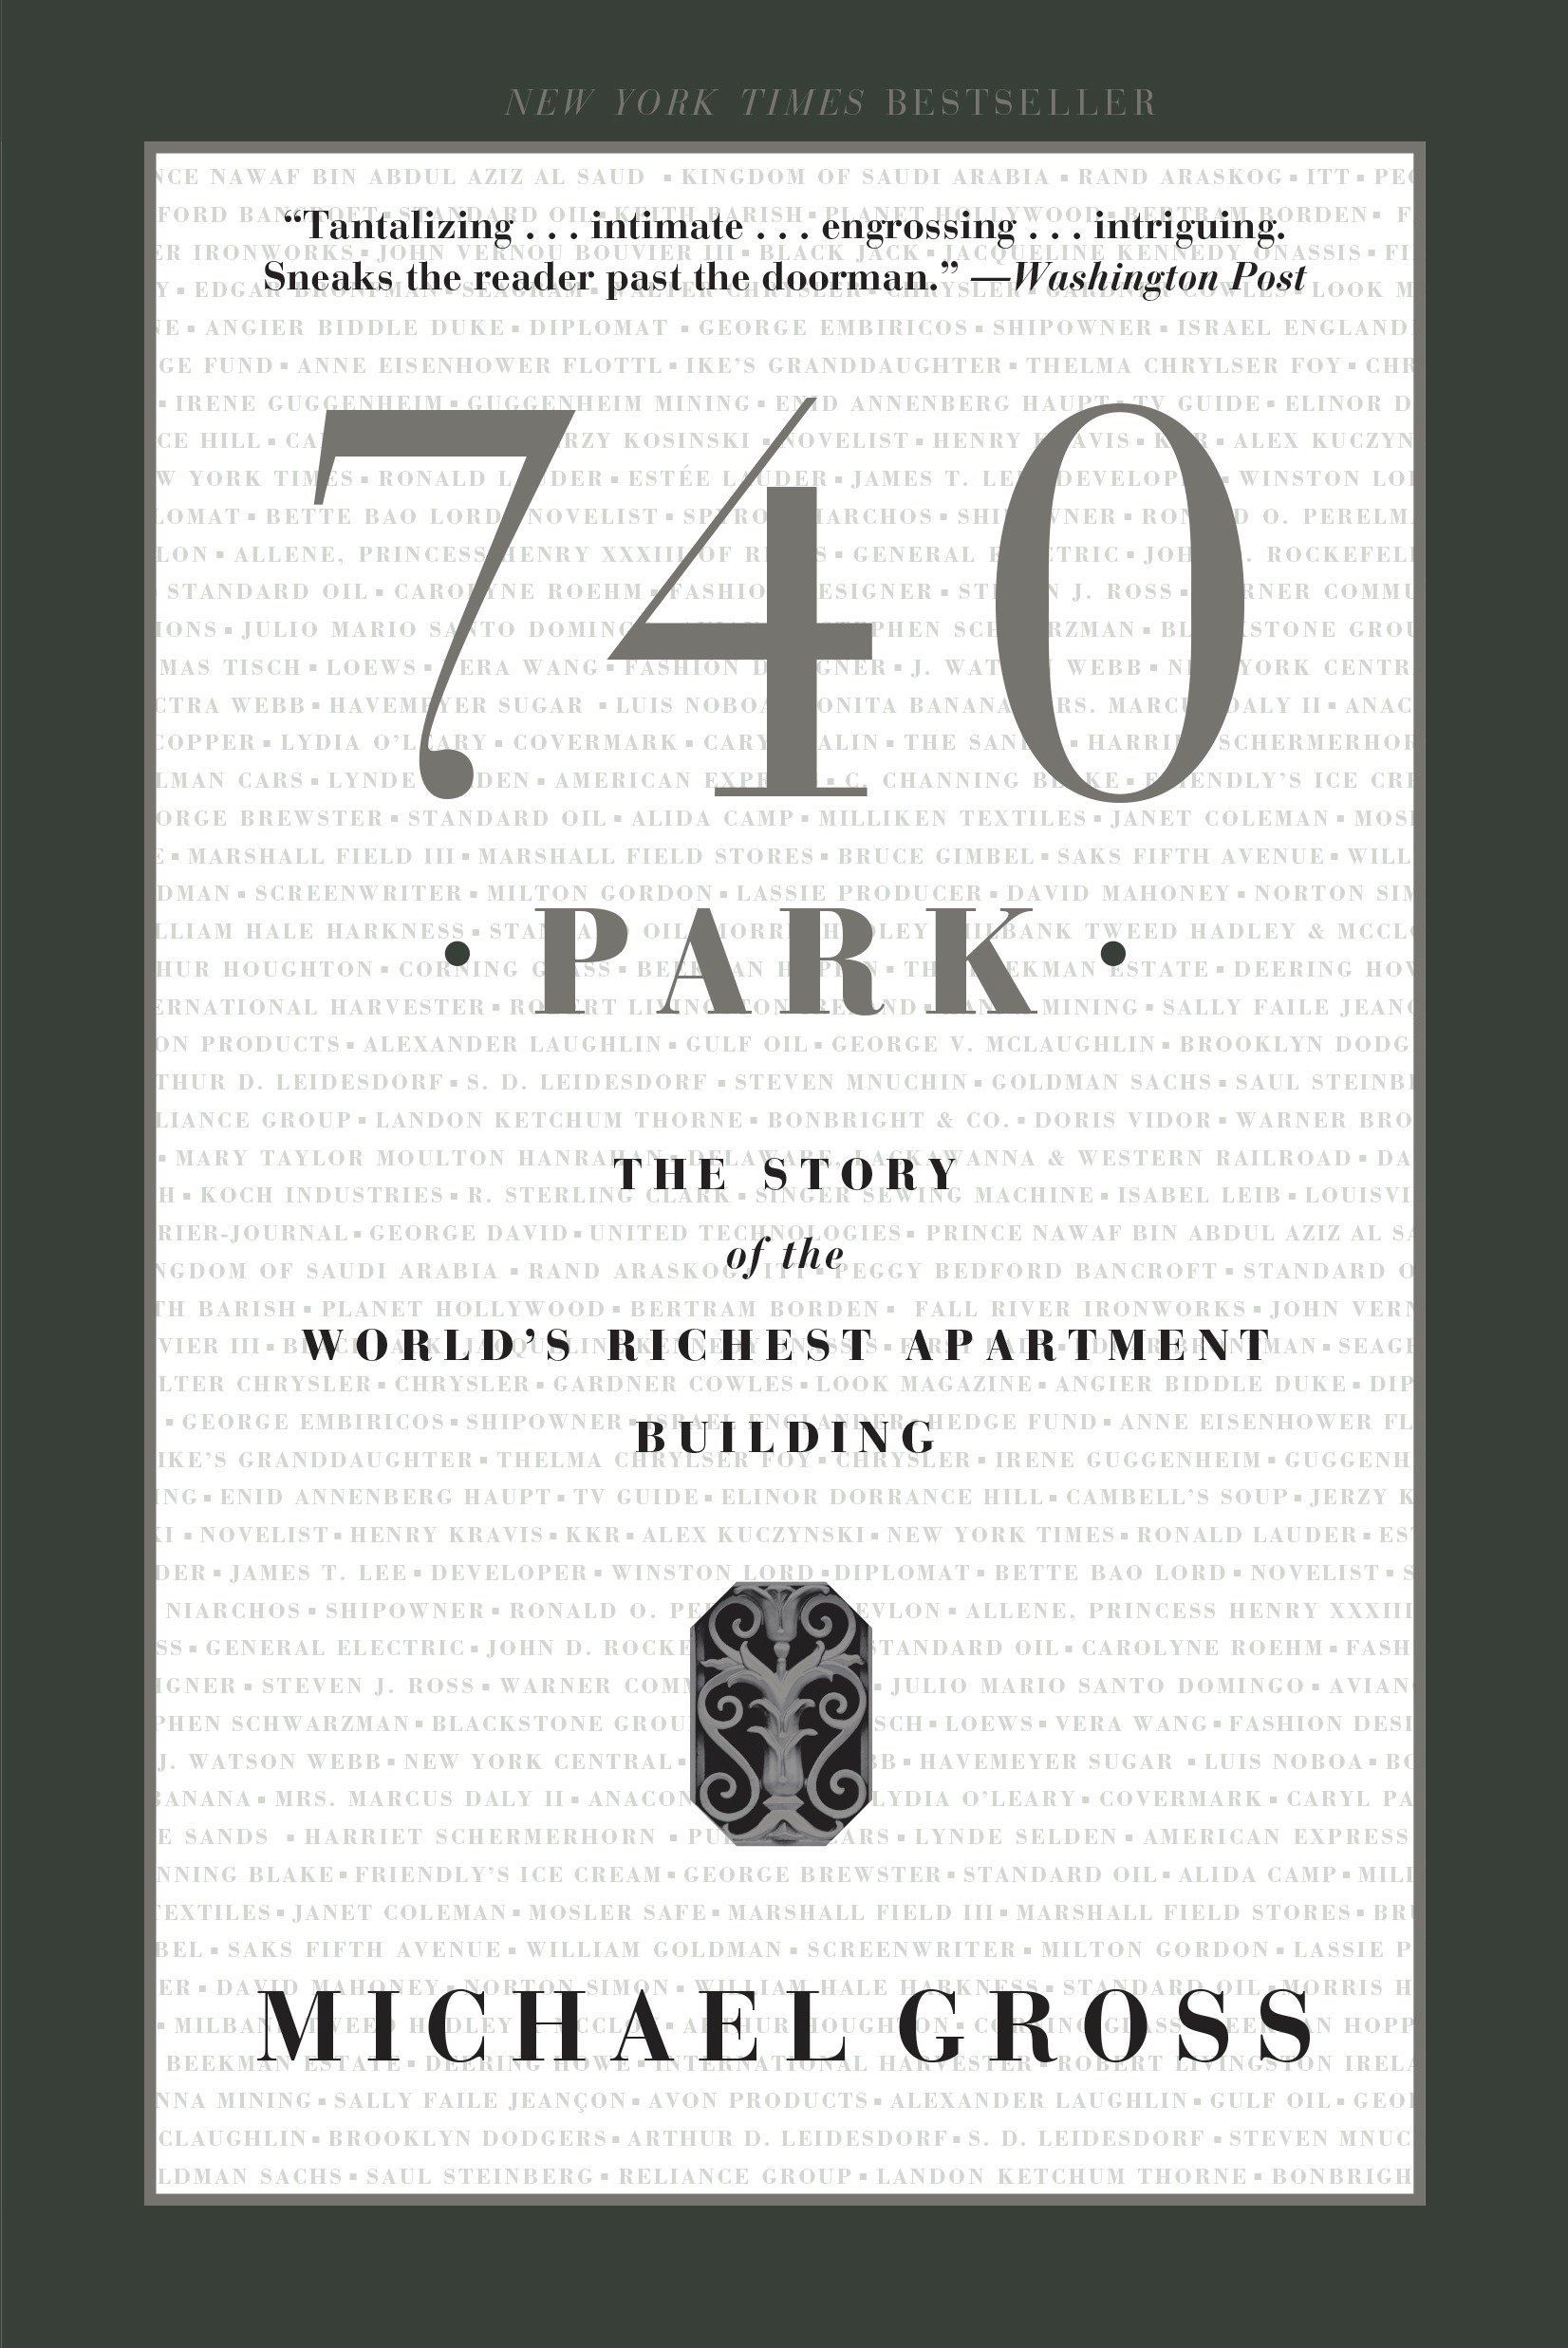 740 Park: The Story of the World's Richest Apartment Building pdf